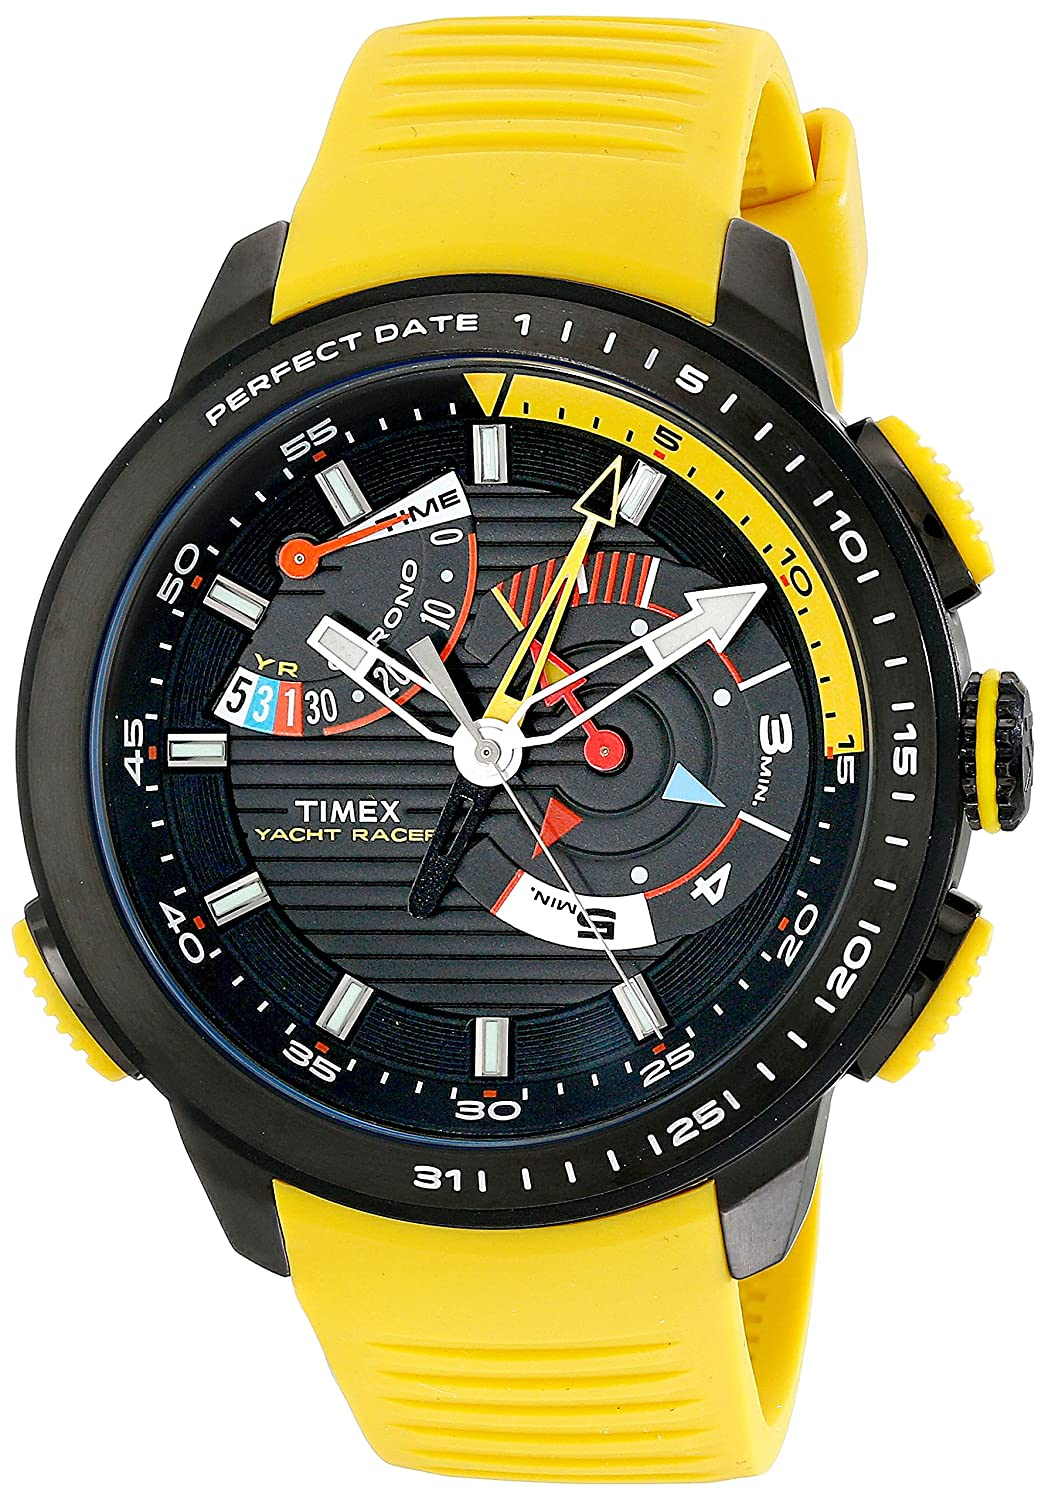 ba57e93fa0f5 Amazon.com  Timex Men s TW2P44500DH Intelligent Quartz Yacht Racer Watch  With Yellow Silicone Band  Timex  Watches